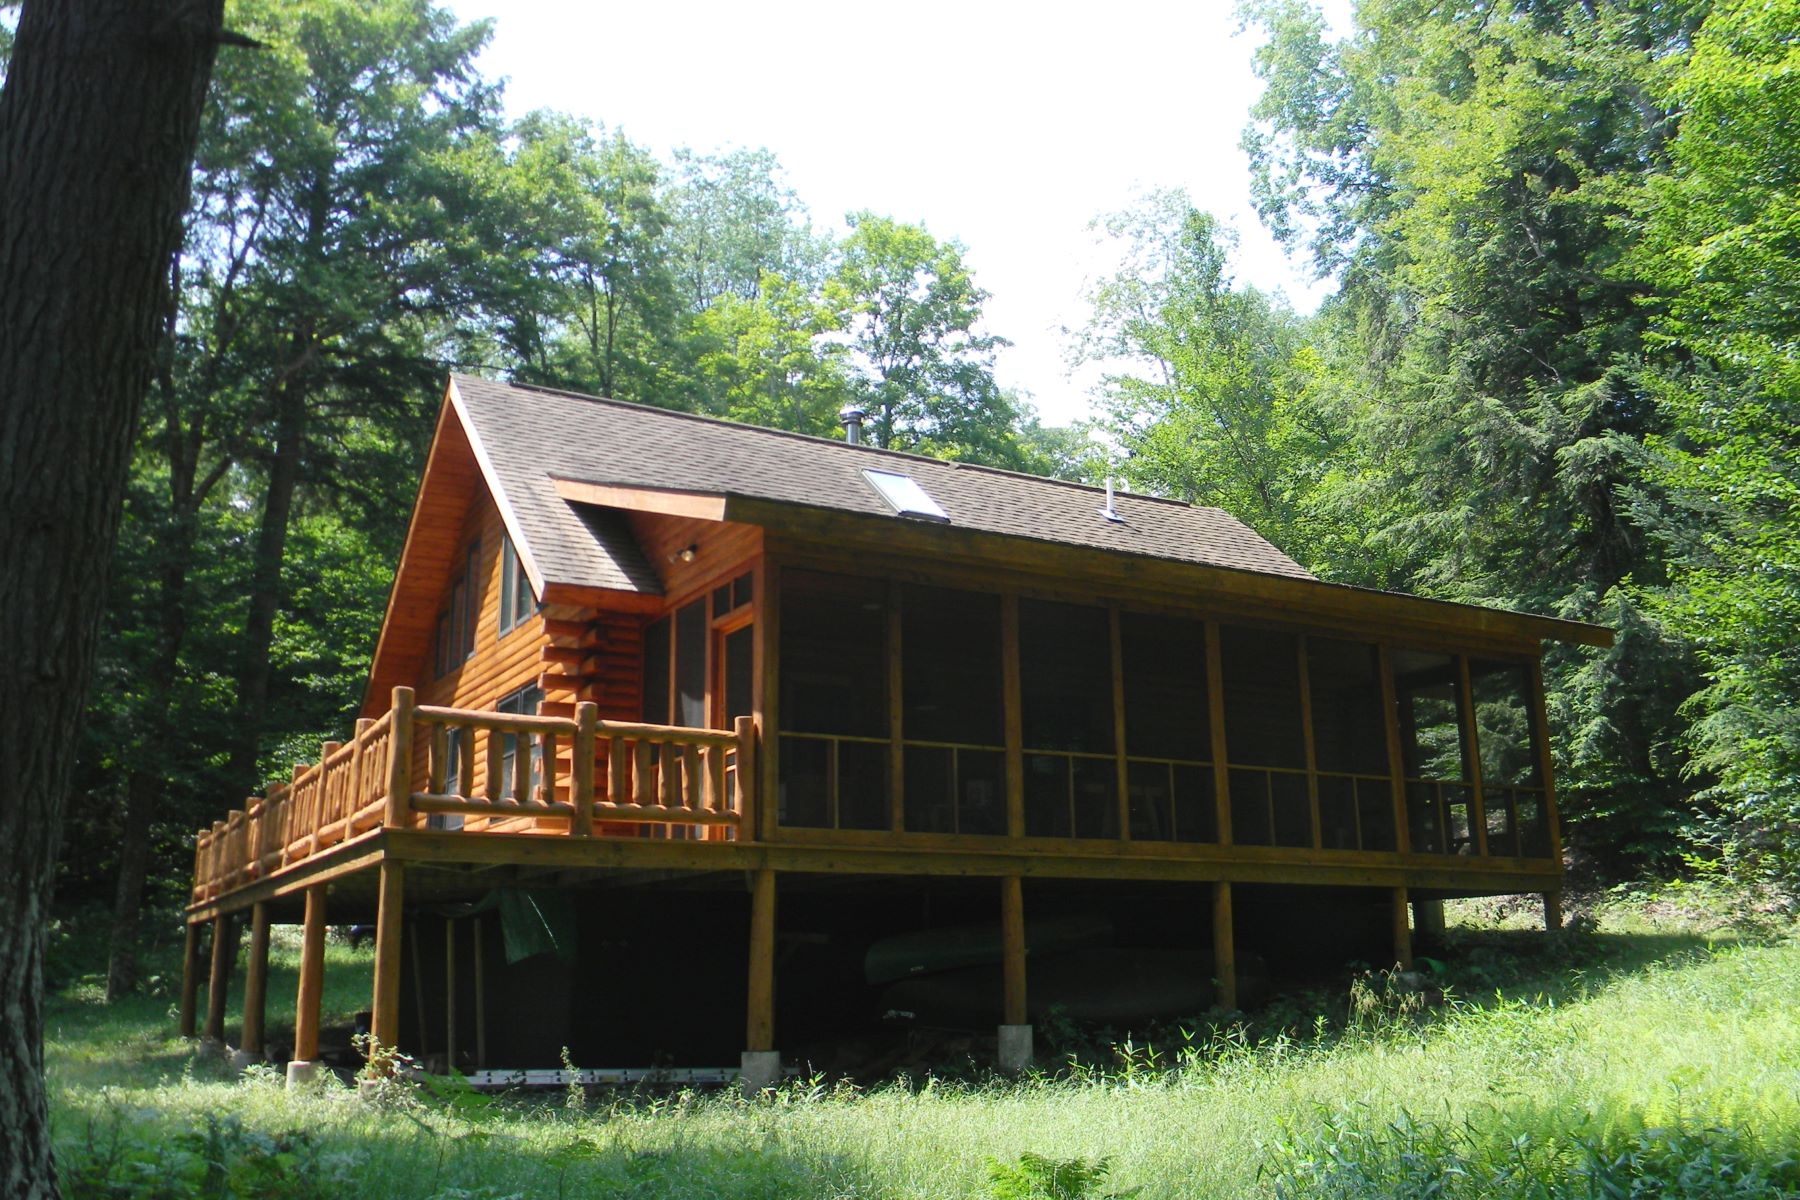 Single Family Home for Sale at Personal Sanctuary with Cedar Log Home and Private Lake 162 Farr Rd. Remsen, New York 13438 United States